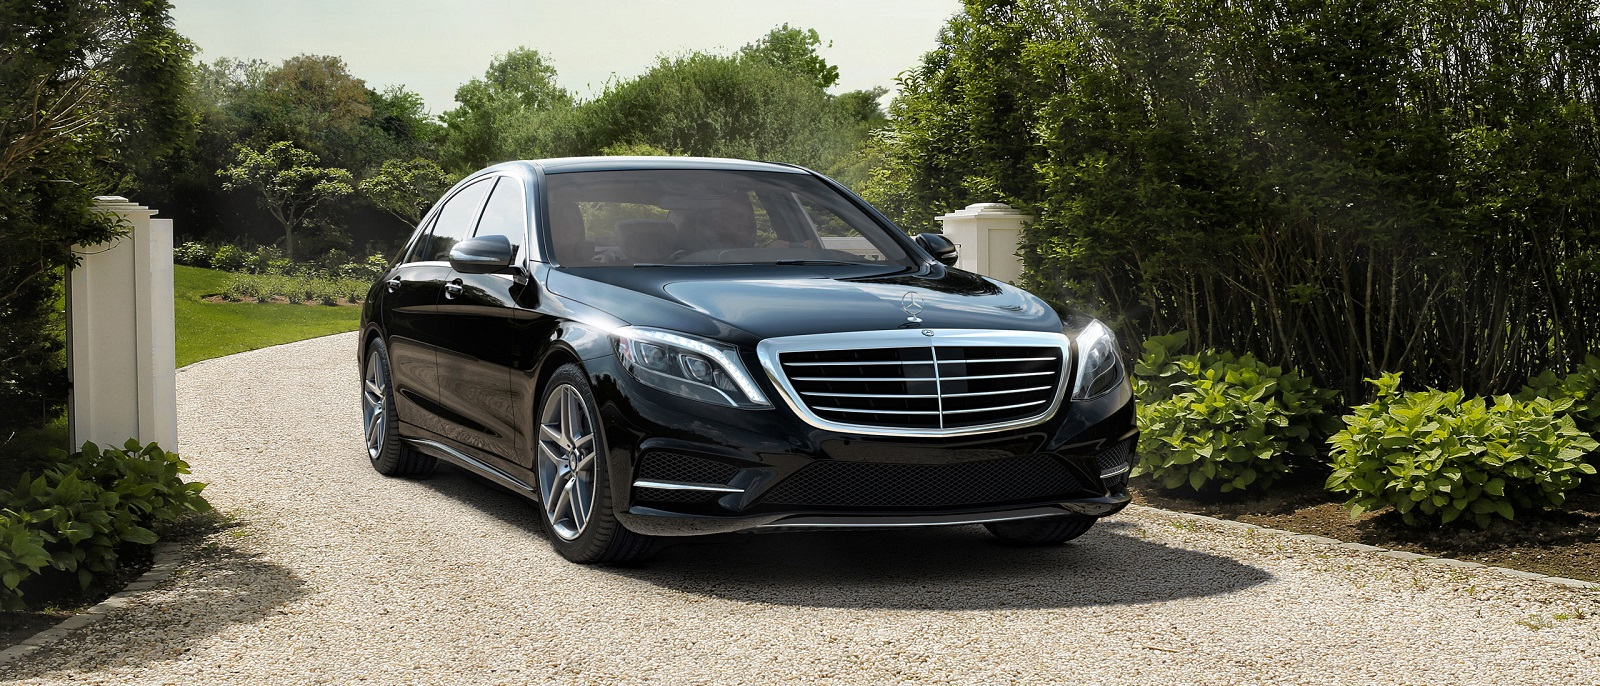 Mercedes-Benz S550 - Color | Black